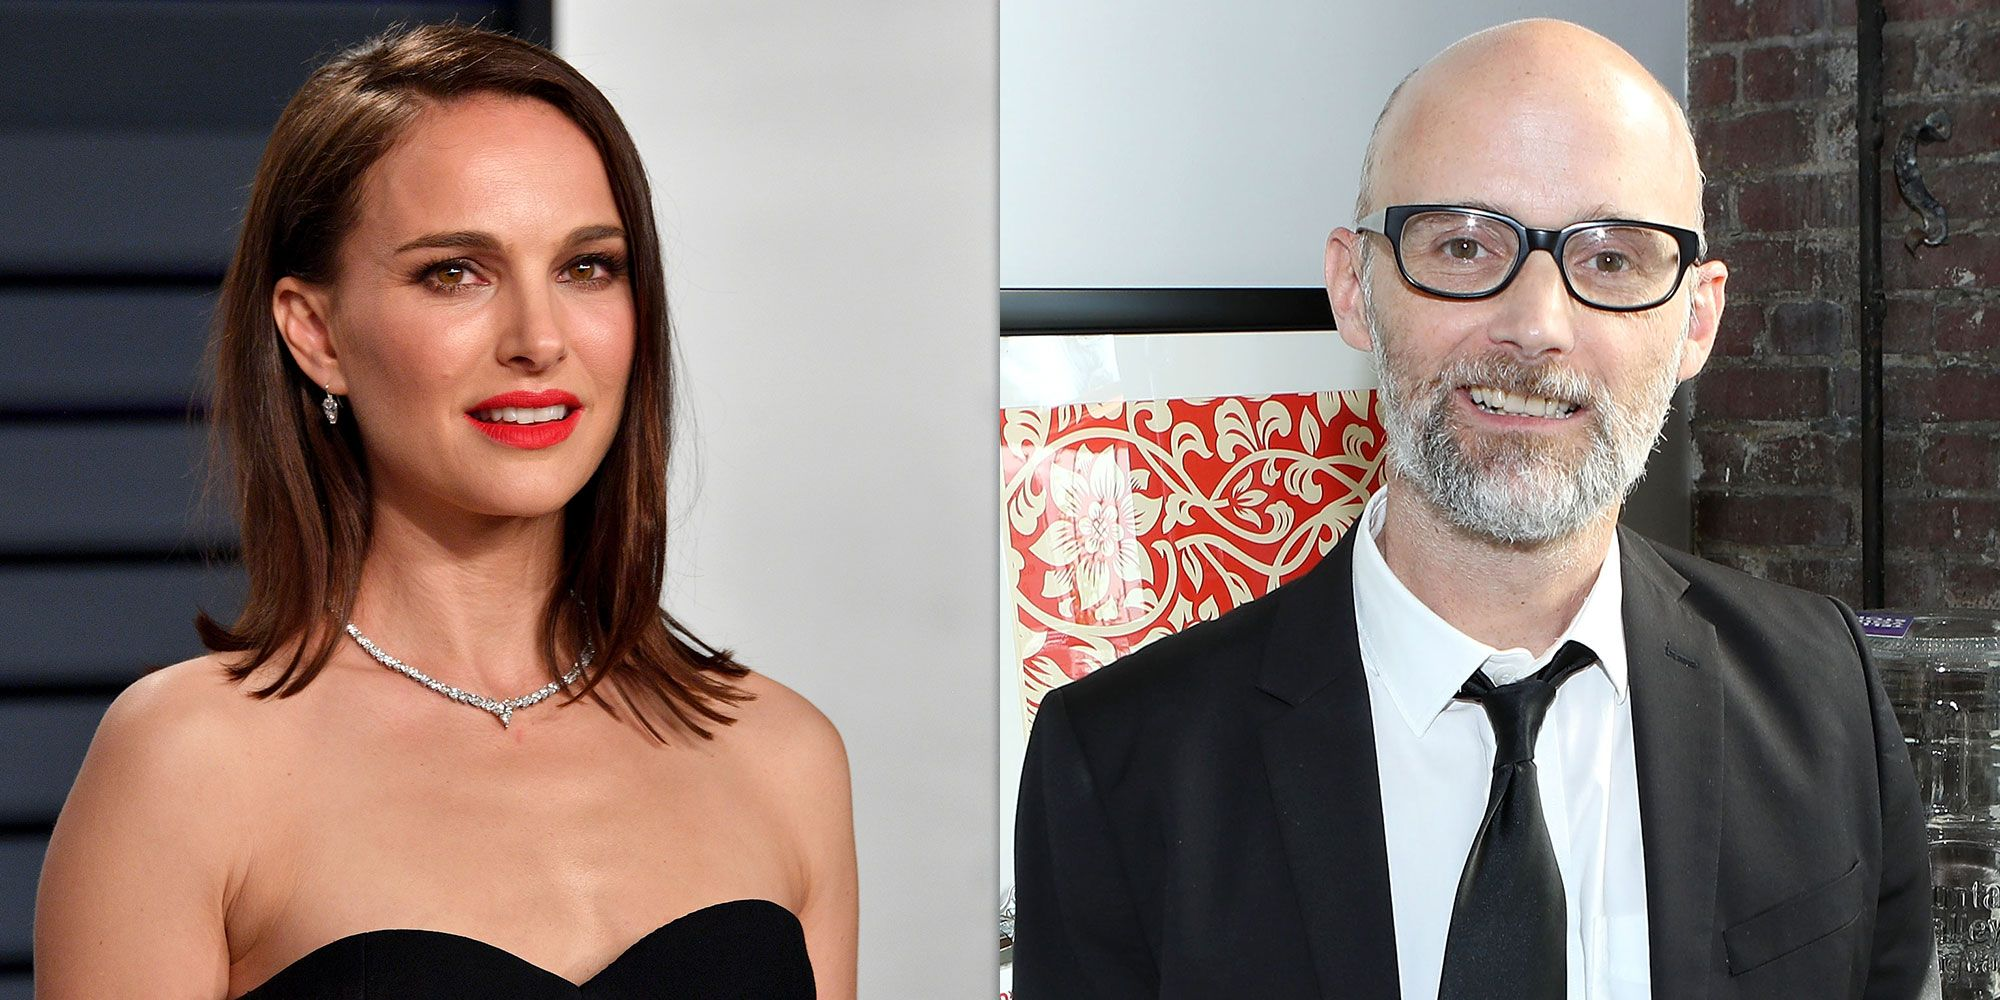 Natalie Portman Denies Moby's Claim They Dated When She Was 20 and Says He's 'Creepy'